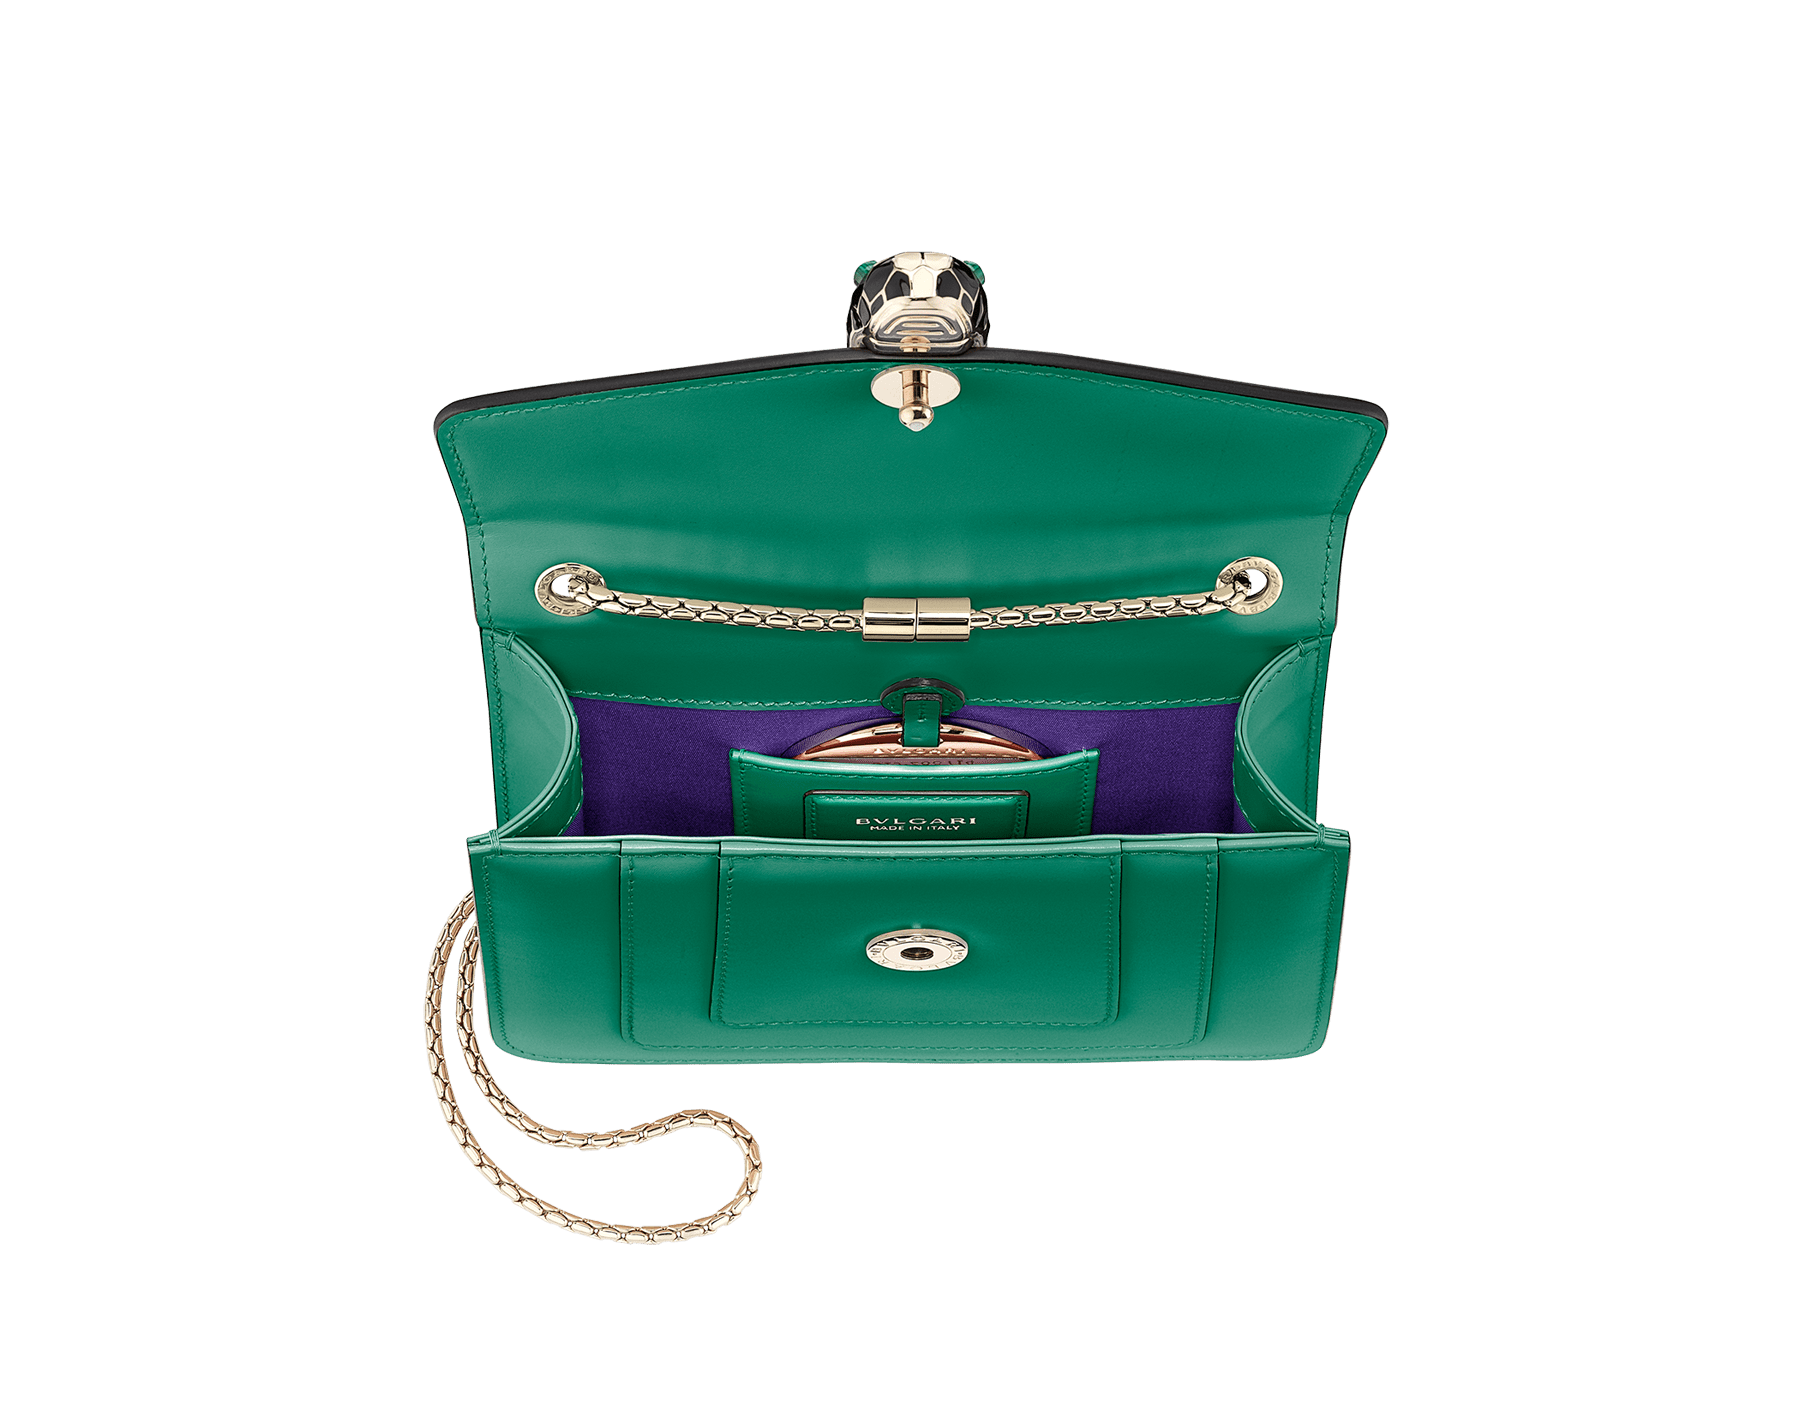 Shoulder bag Serpenti Forever in emerald green calf leather with brass light gold plated Serpenti head closure in black and white enamel with eyes in malachite. 422-CLa image 4